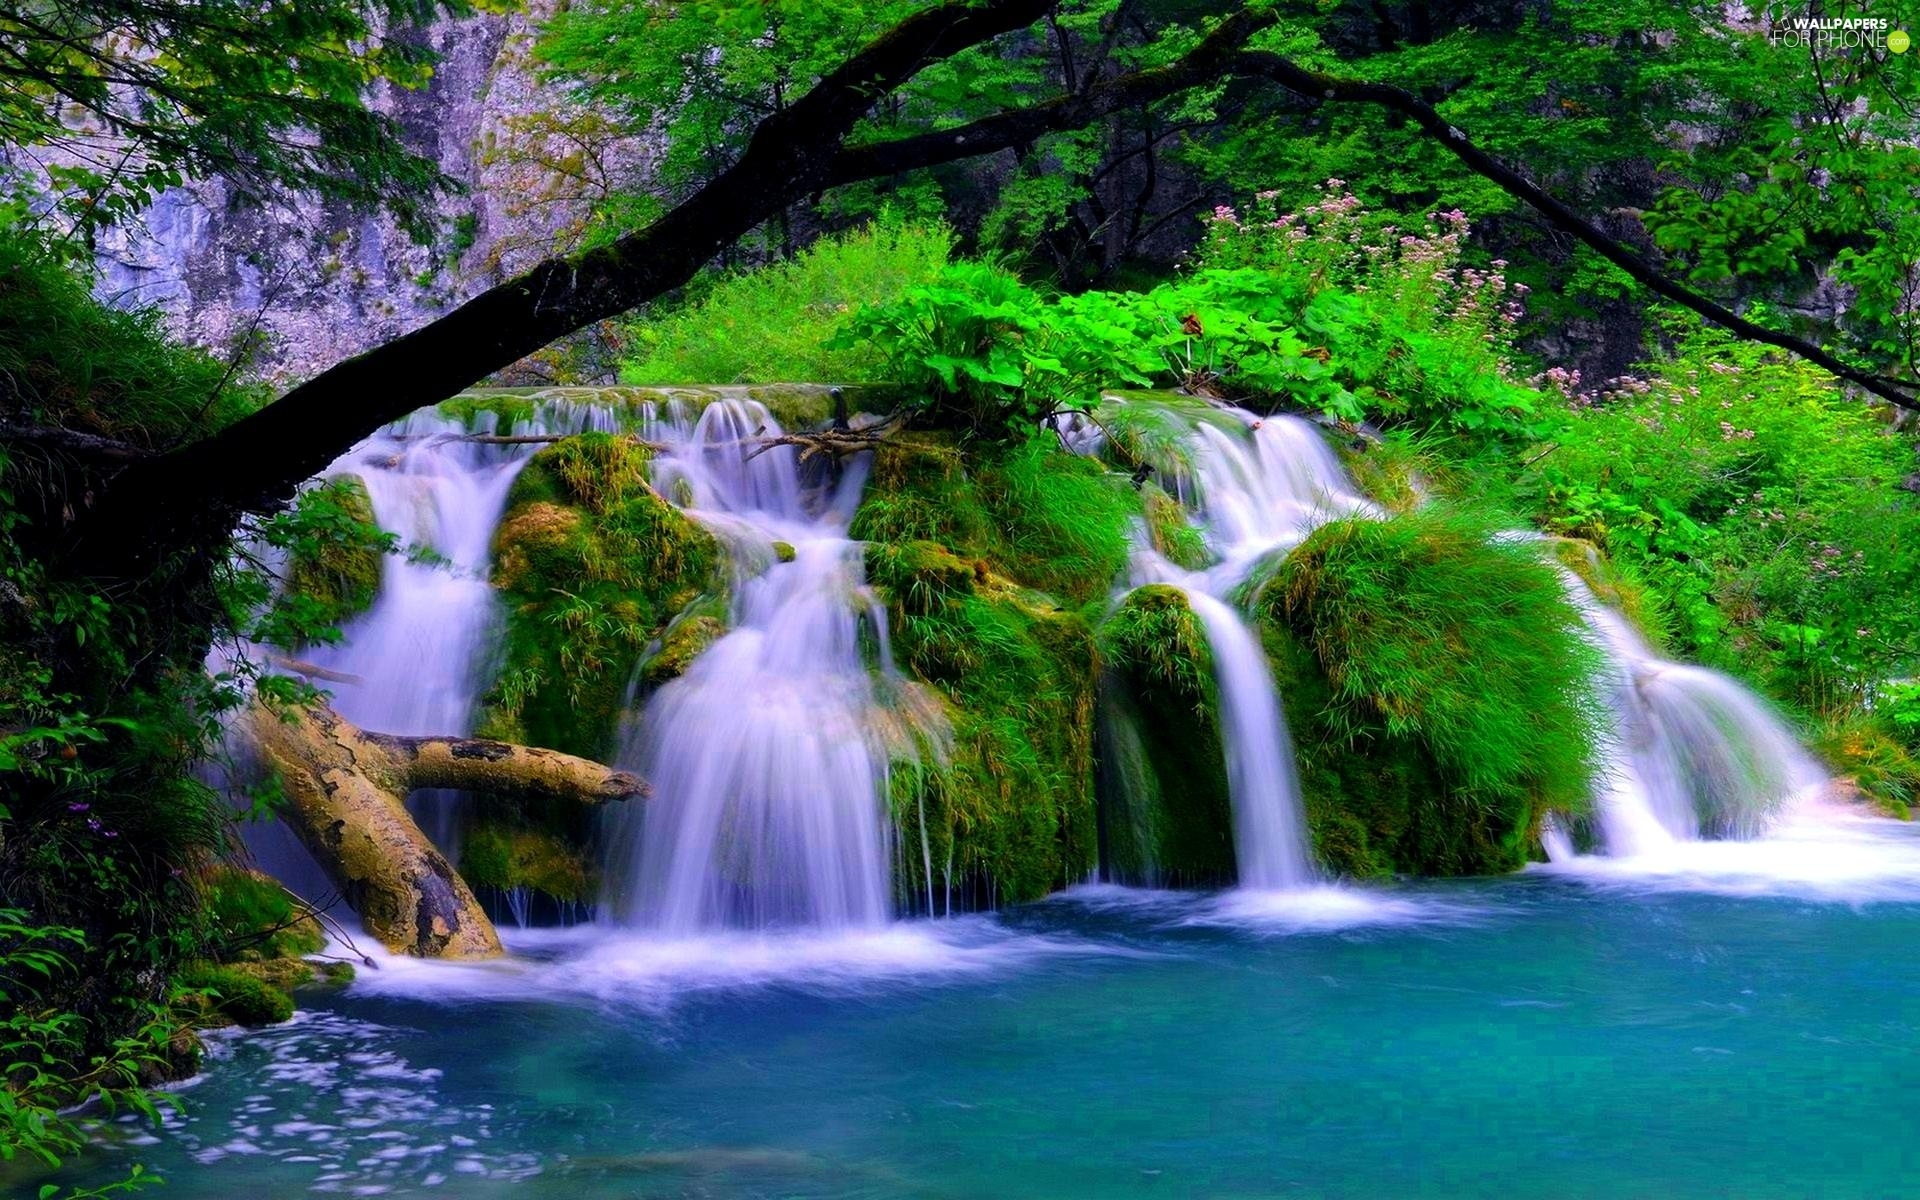 waterfalls desktop wallpaper lake - photo #7